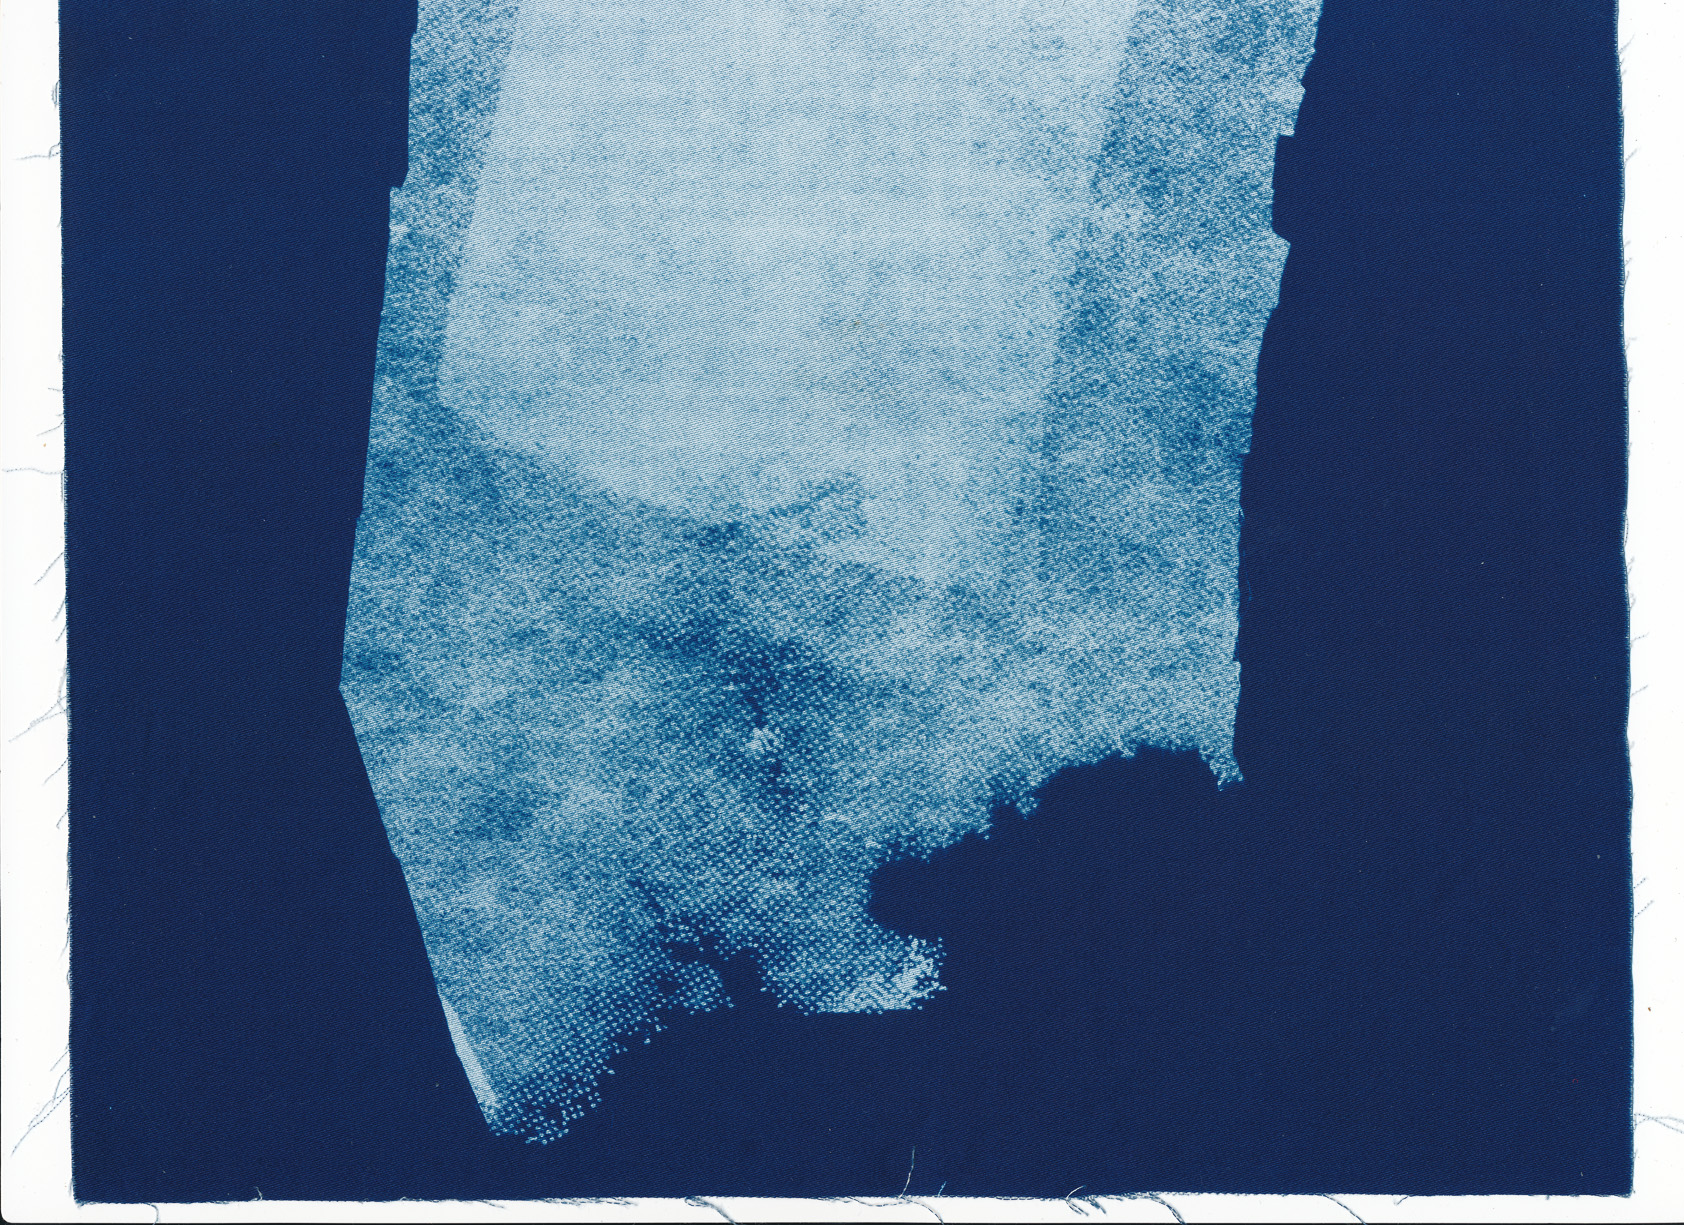 Dissolve, cyanotype on cotton fabric, Mike Tedder